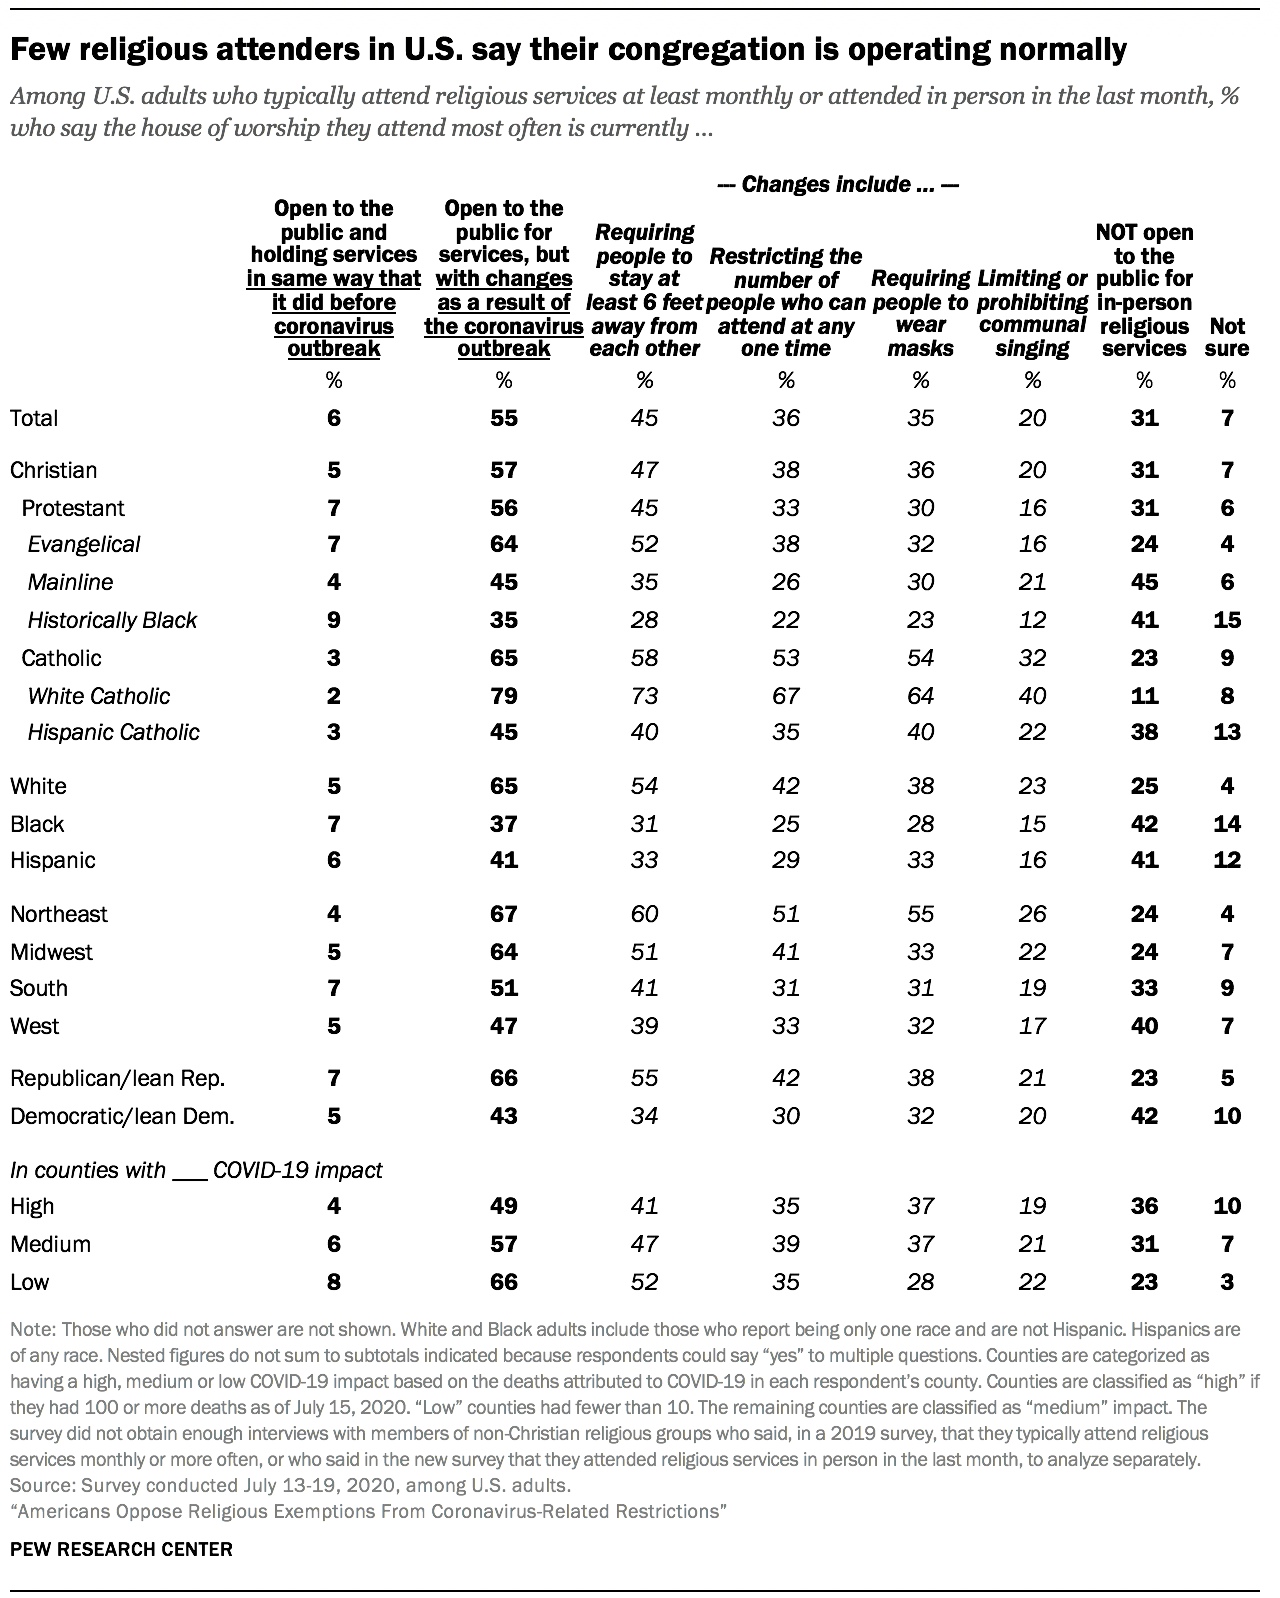 Few religious attenders in U.S. say their congregation is operating normally